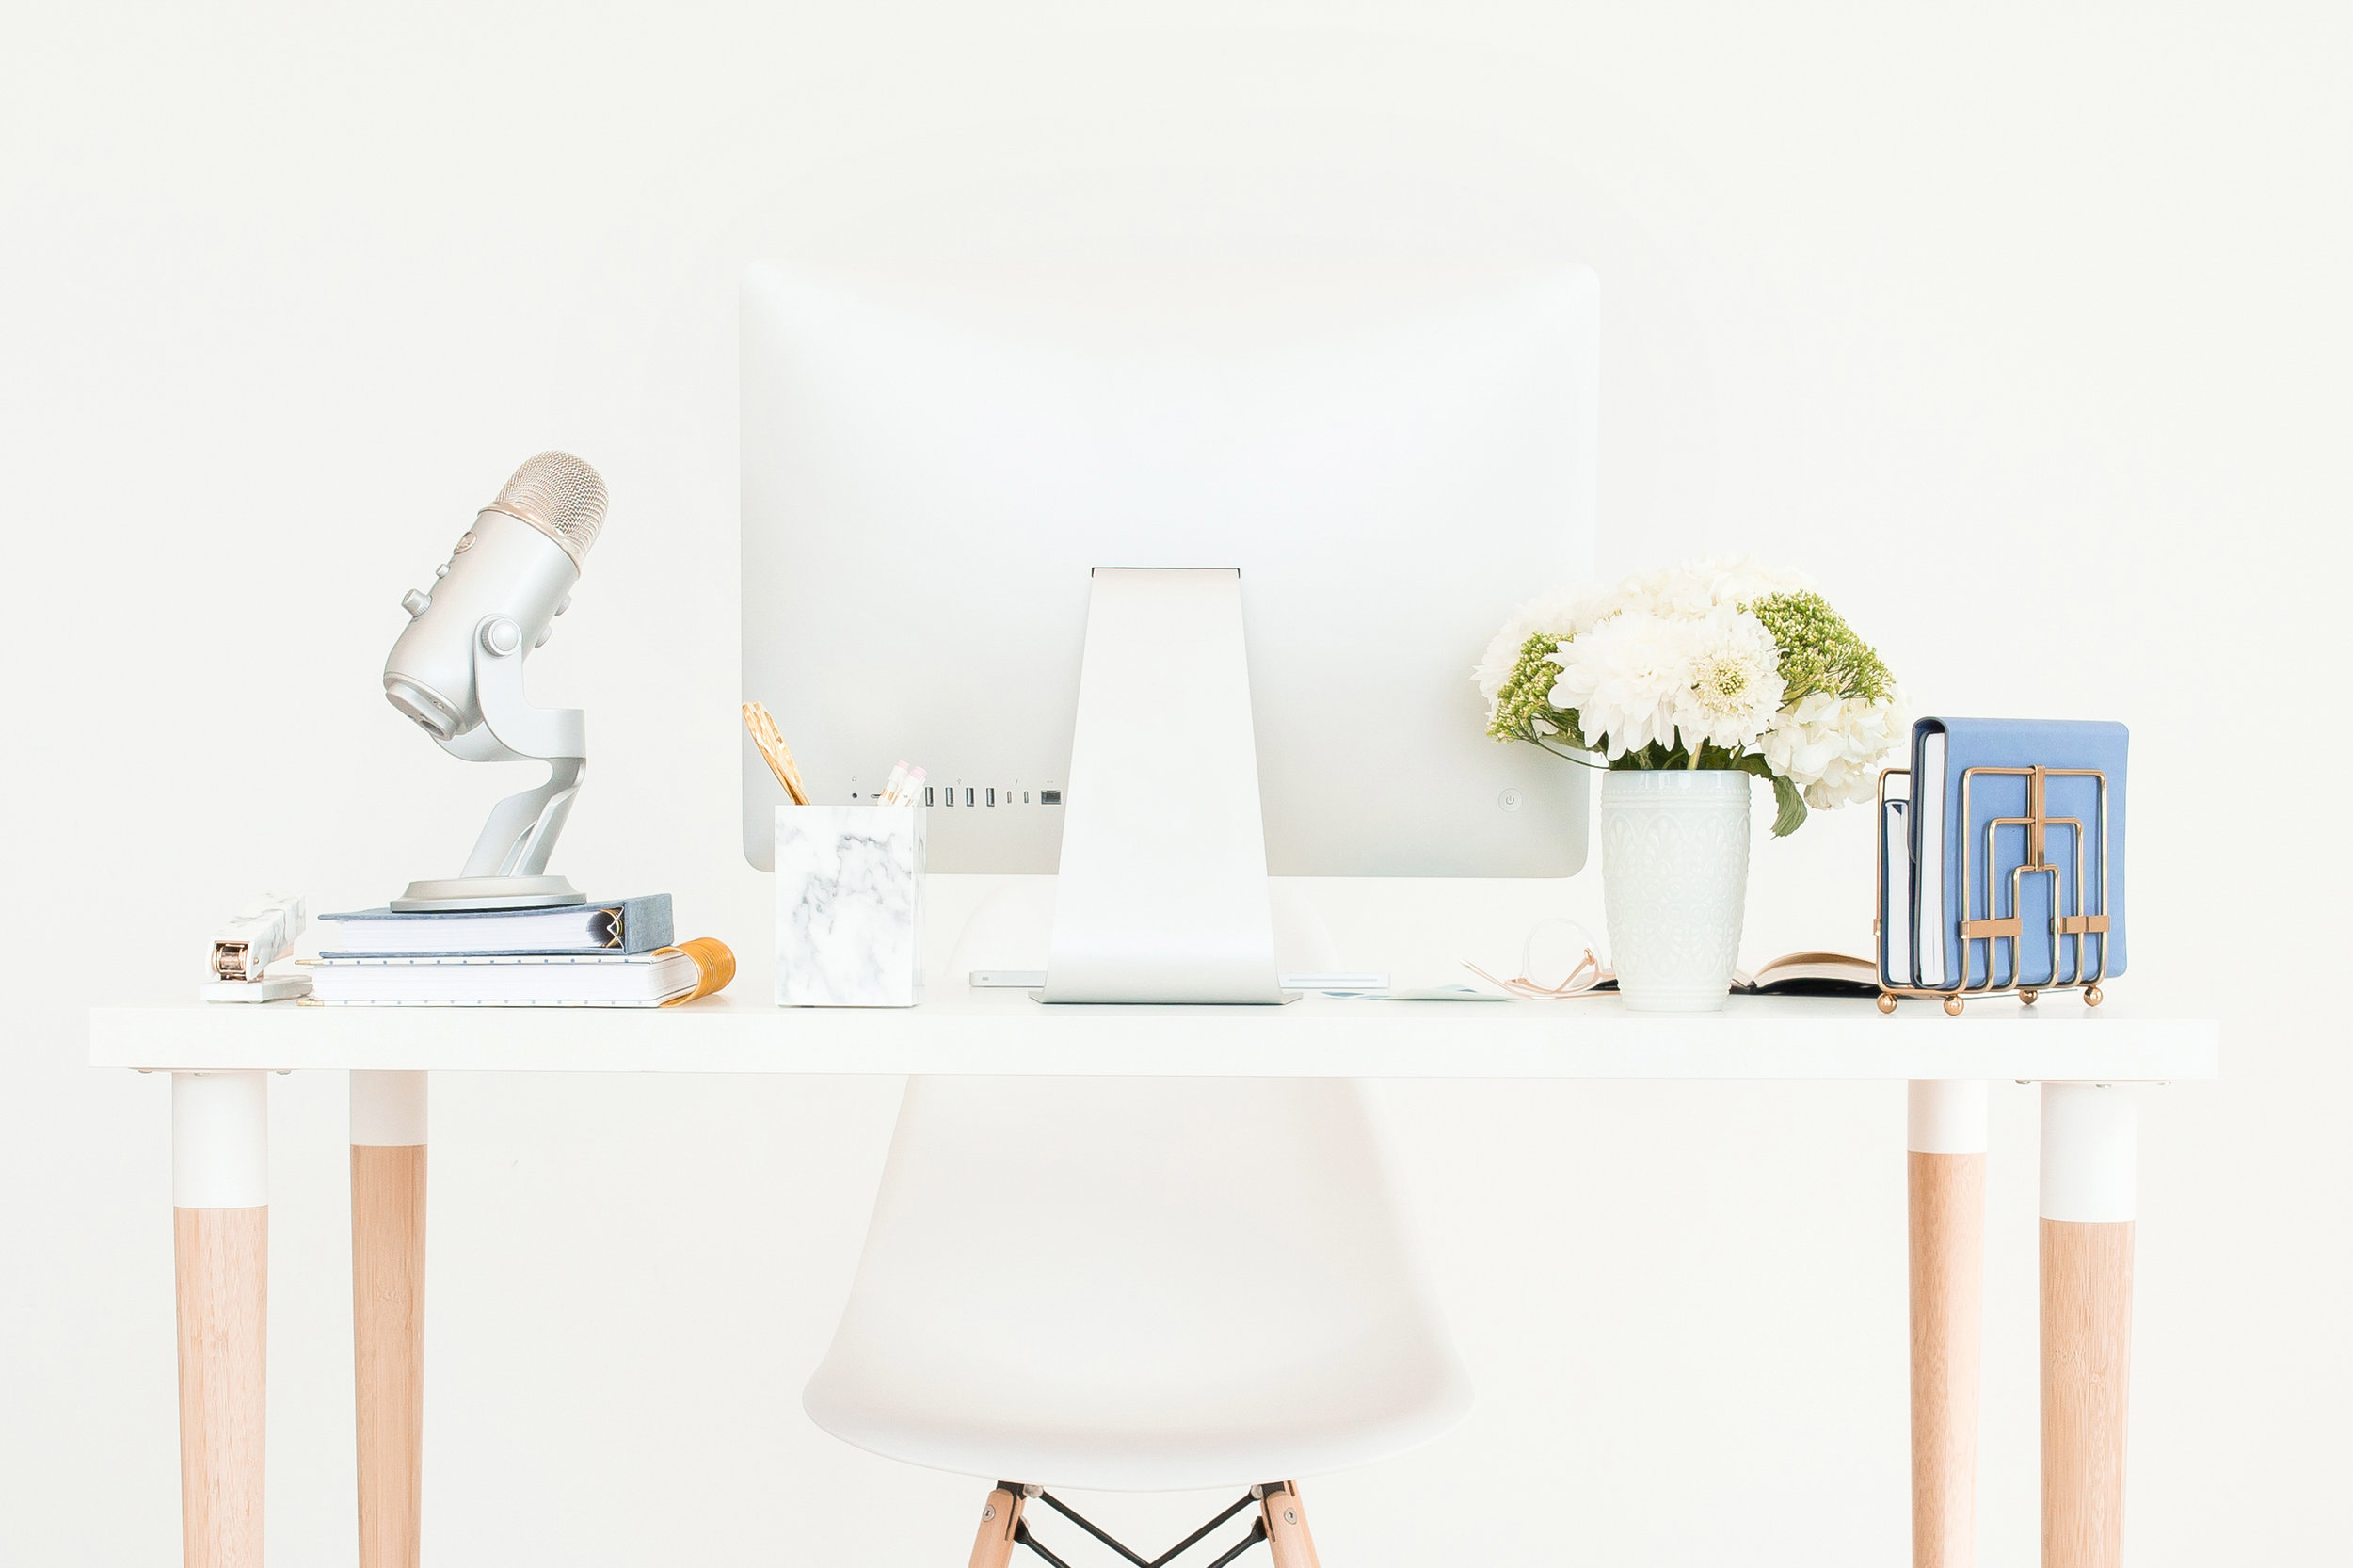 5 Reasons I Choose Squarespace - FOR MYSELF & FOR MY CLIENTS